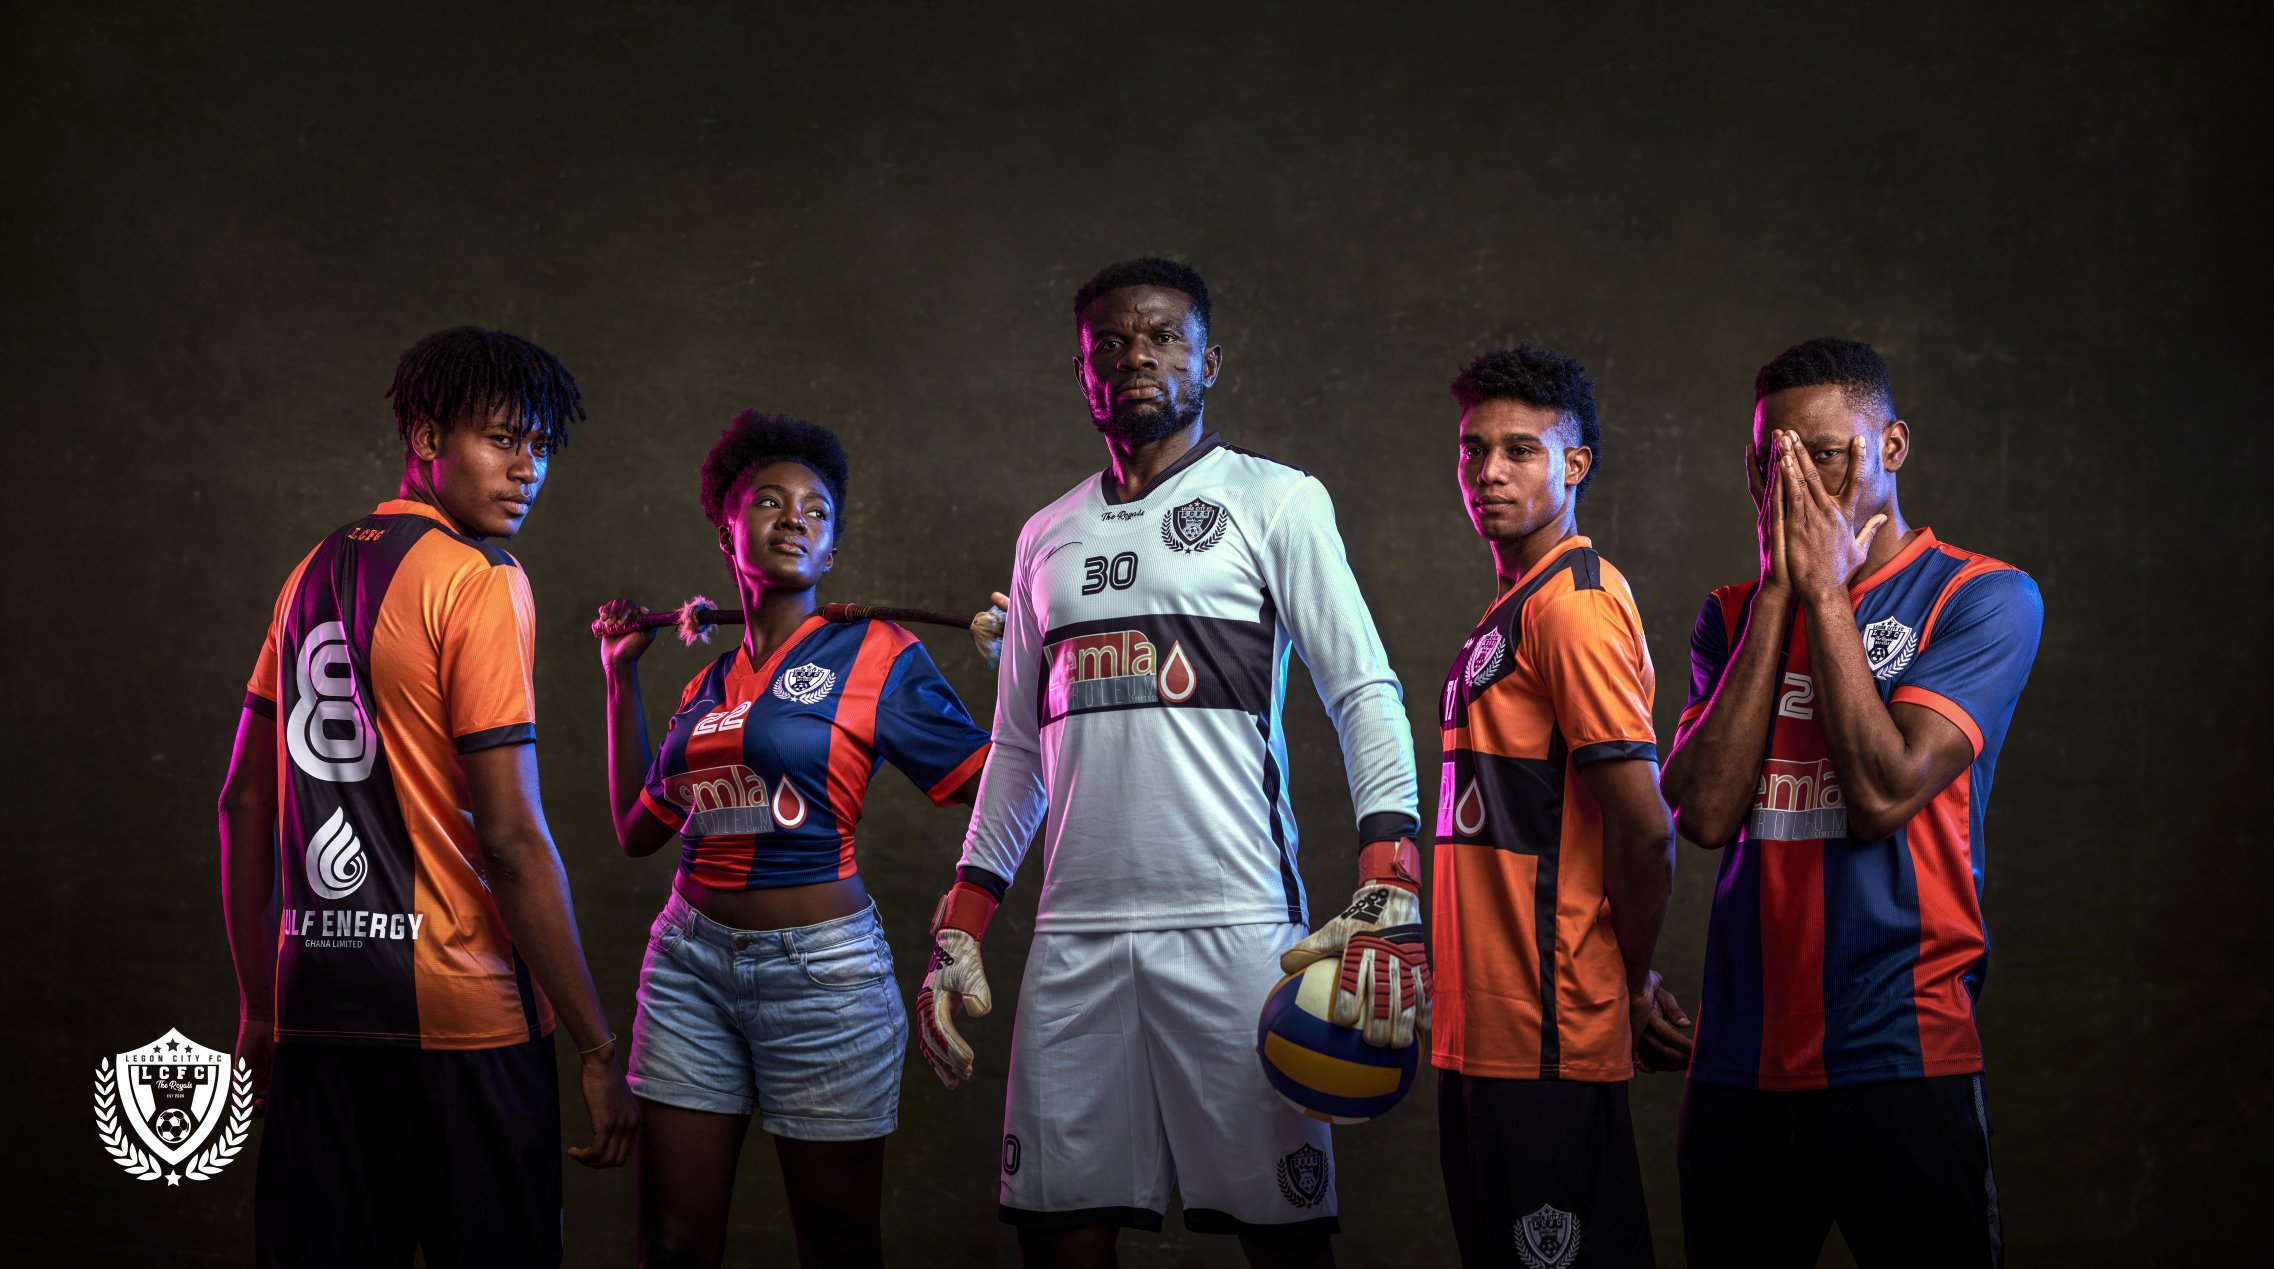 Ghana Premier League side Legon Cities FC outdoor new jersey